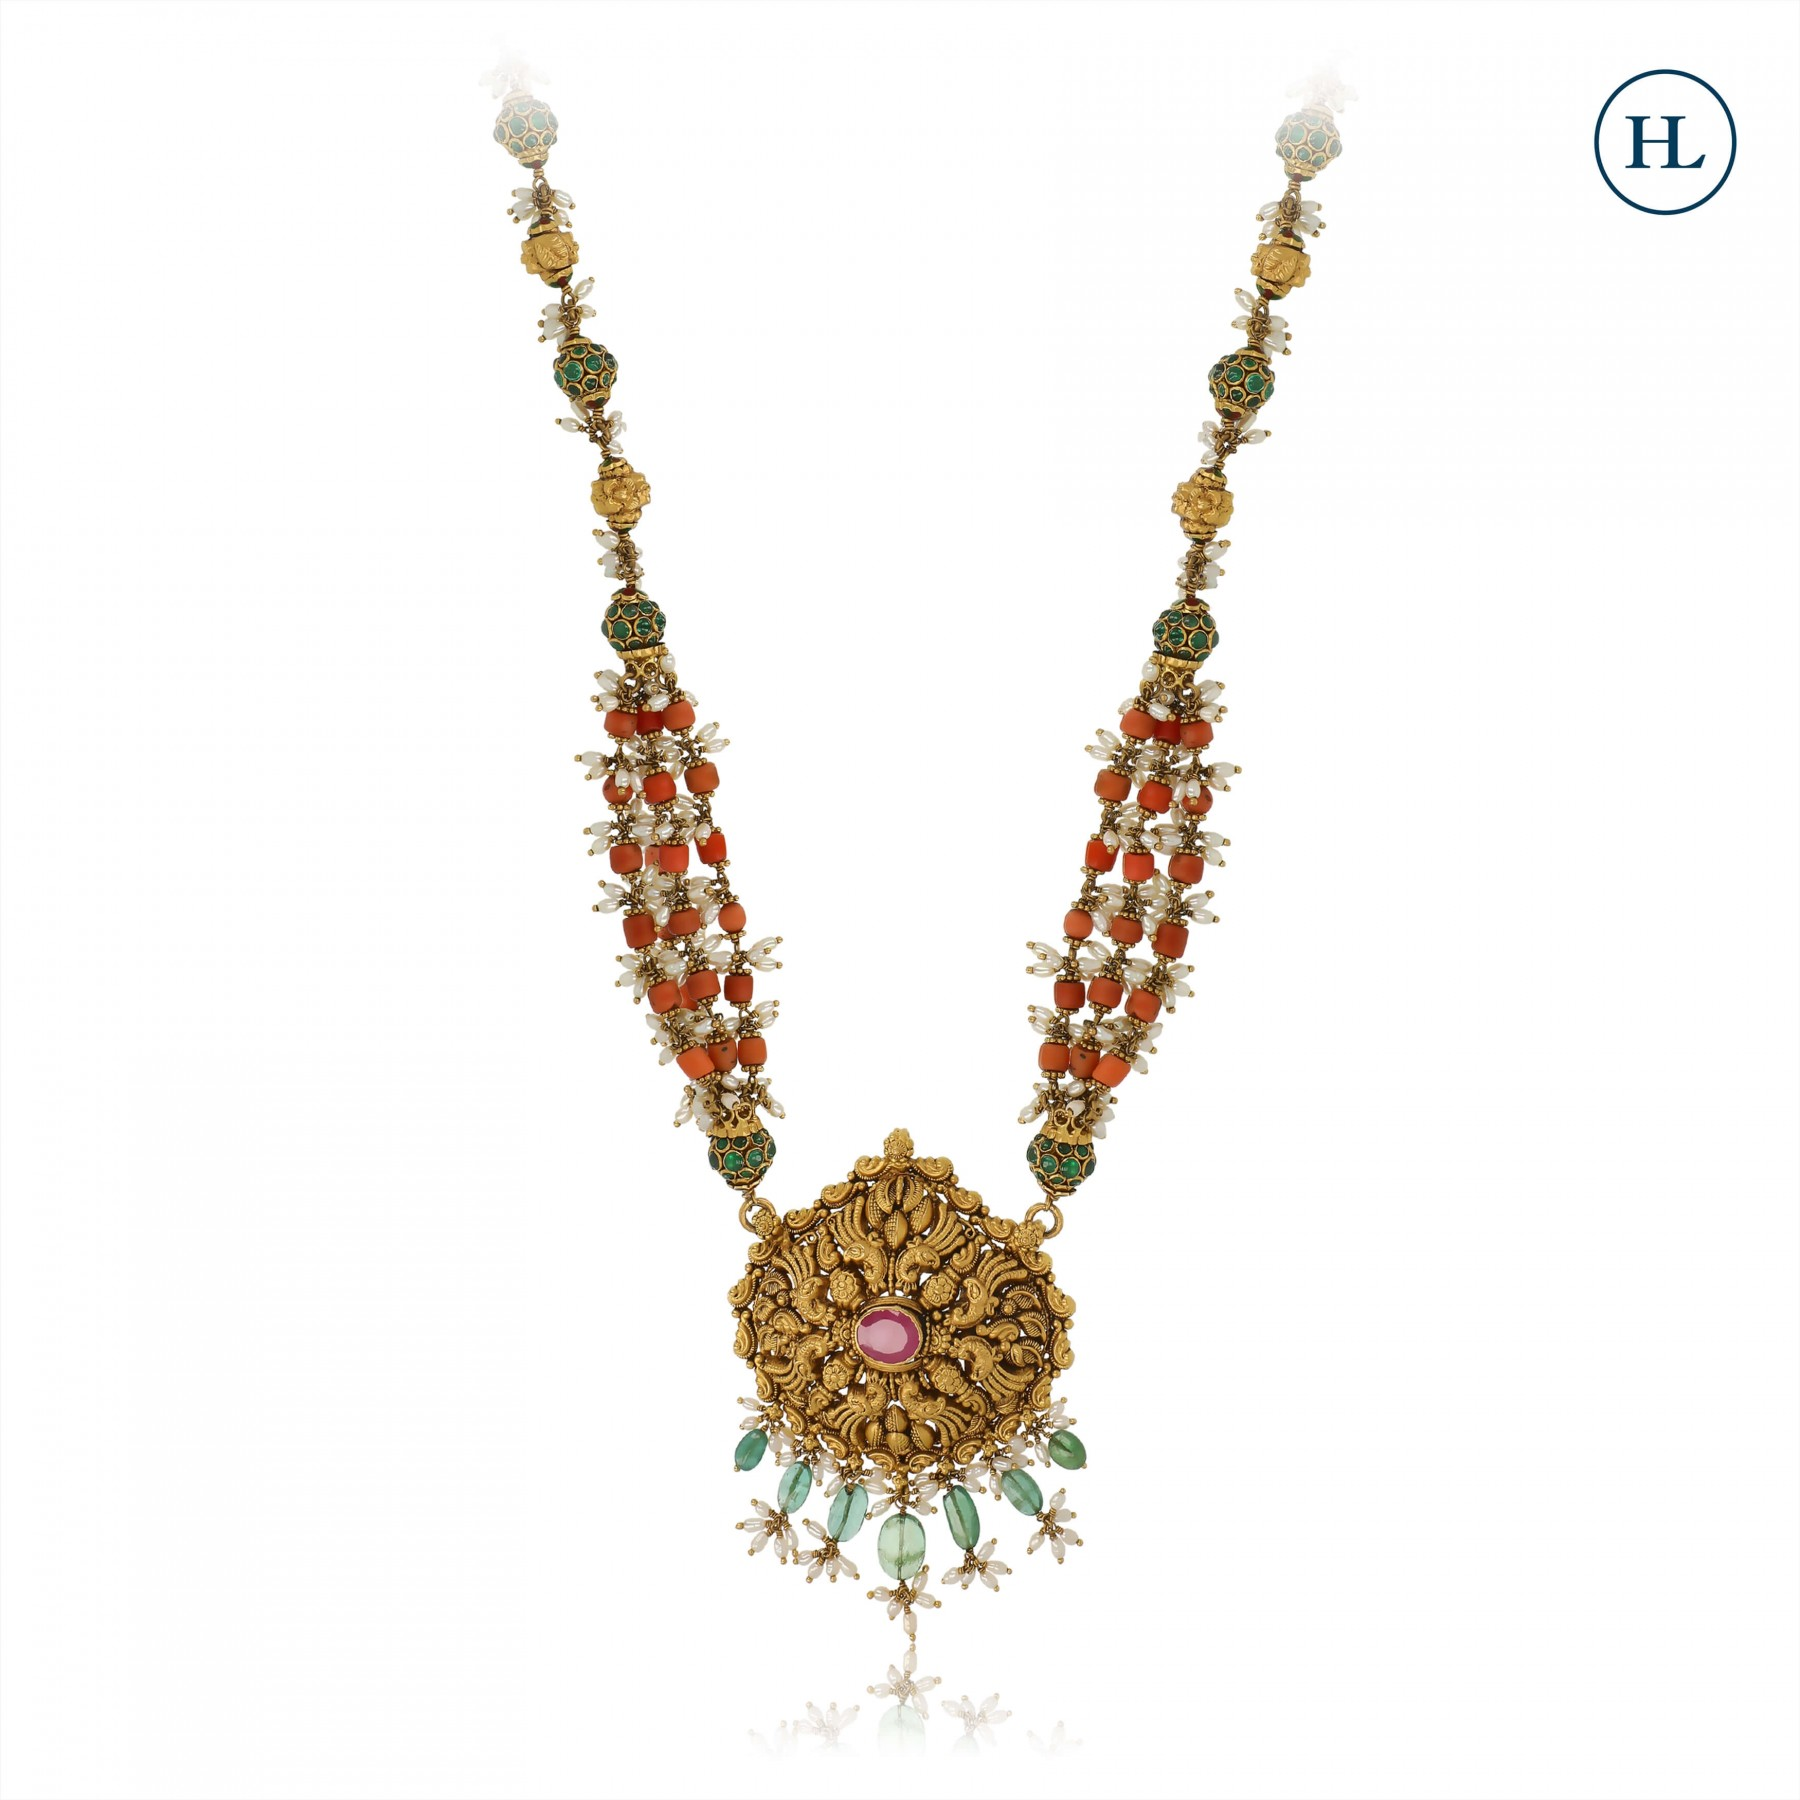 Antique-Styled Coral & Gold Pendant